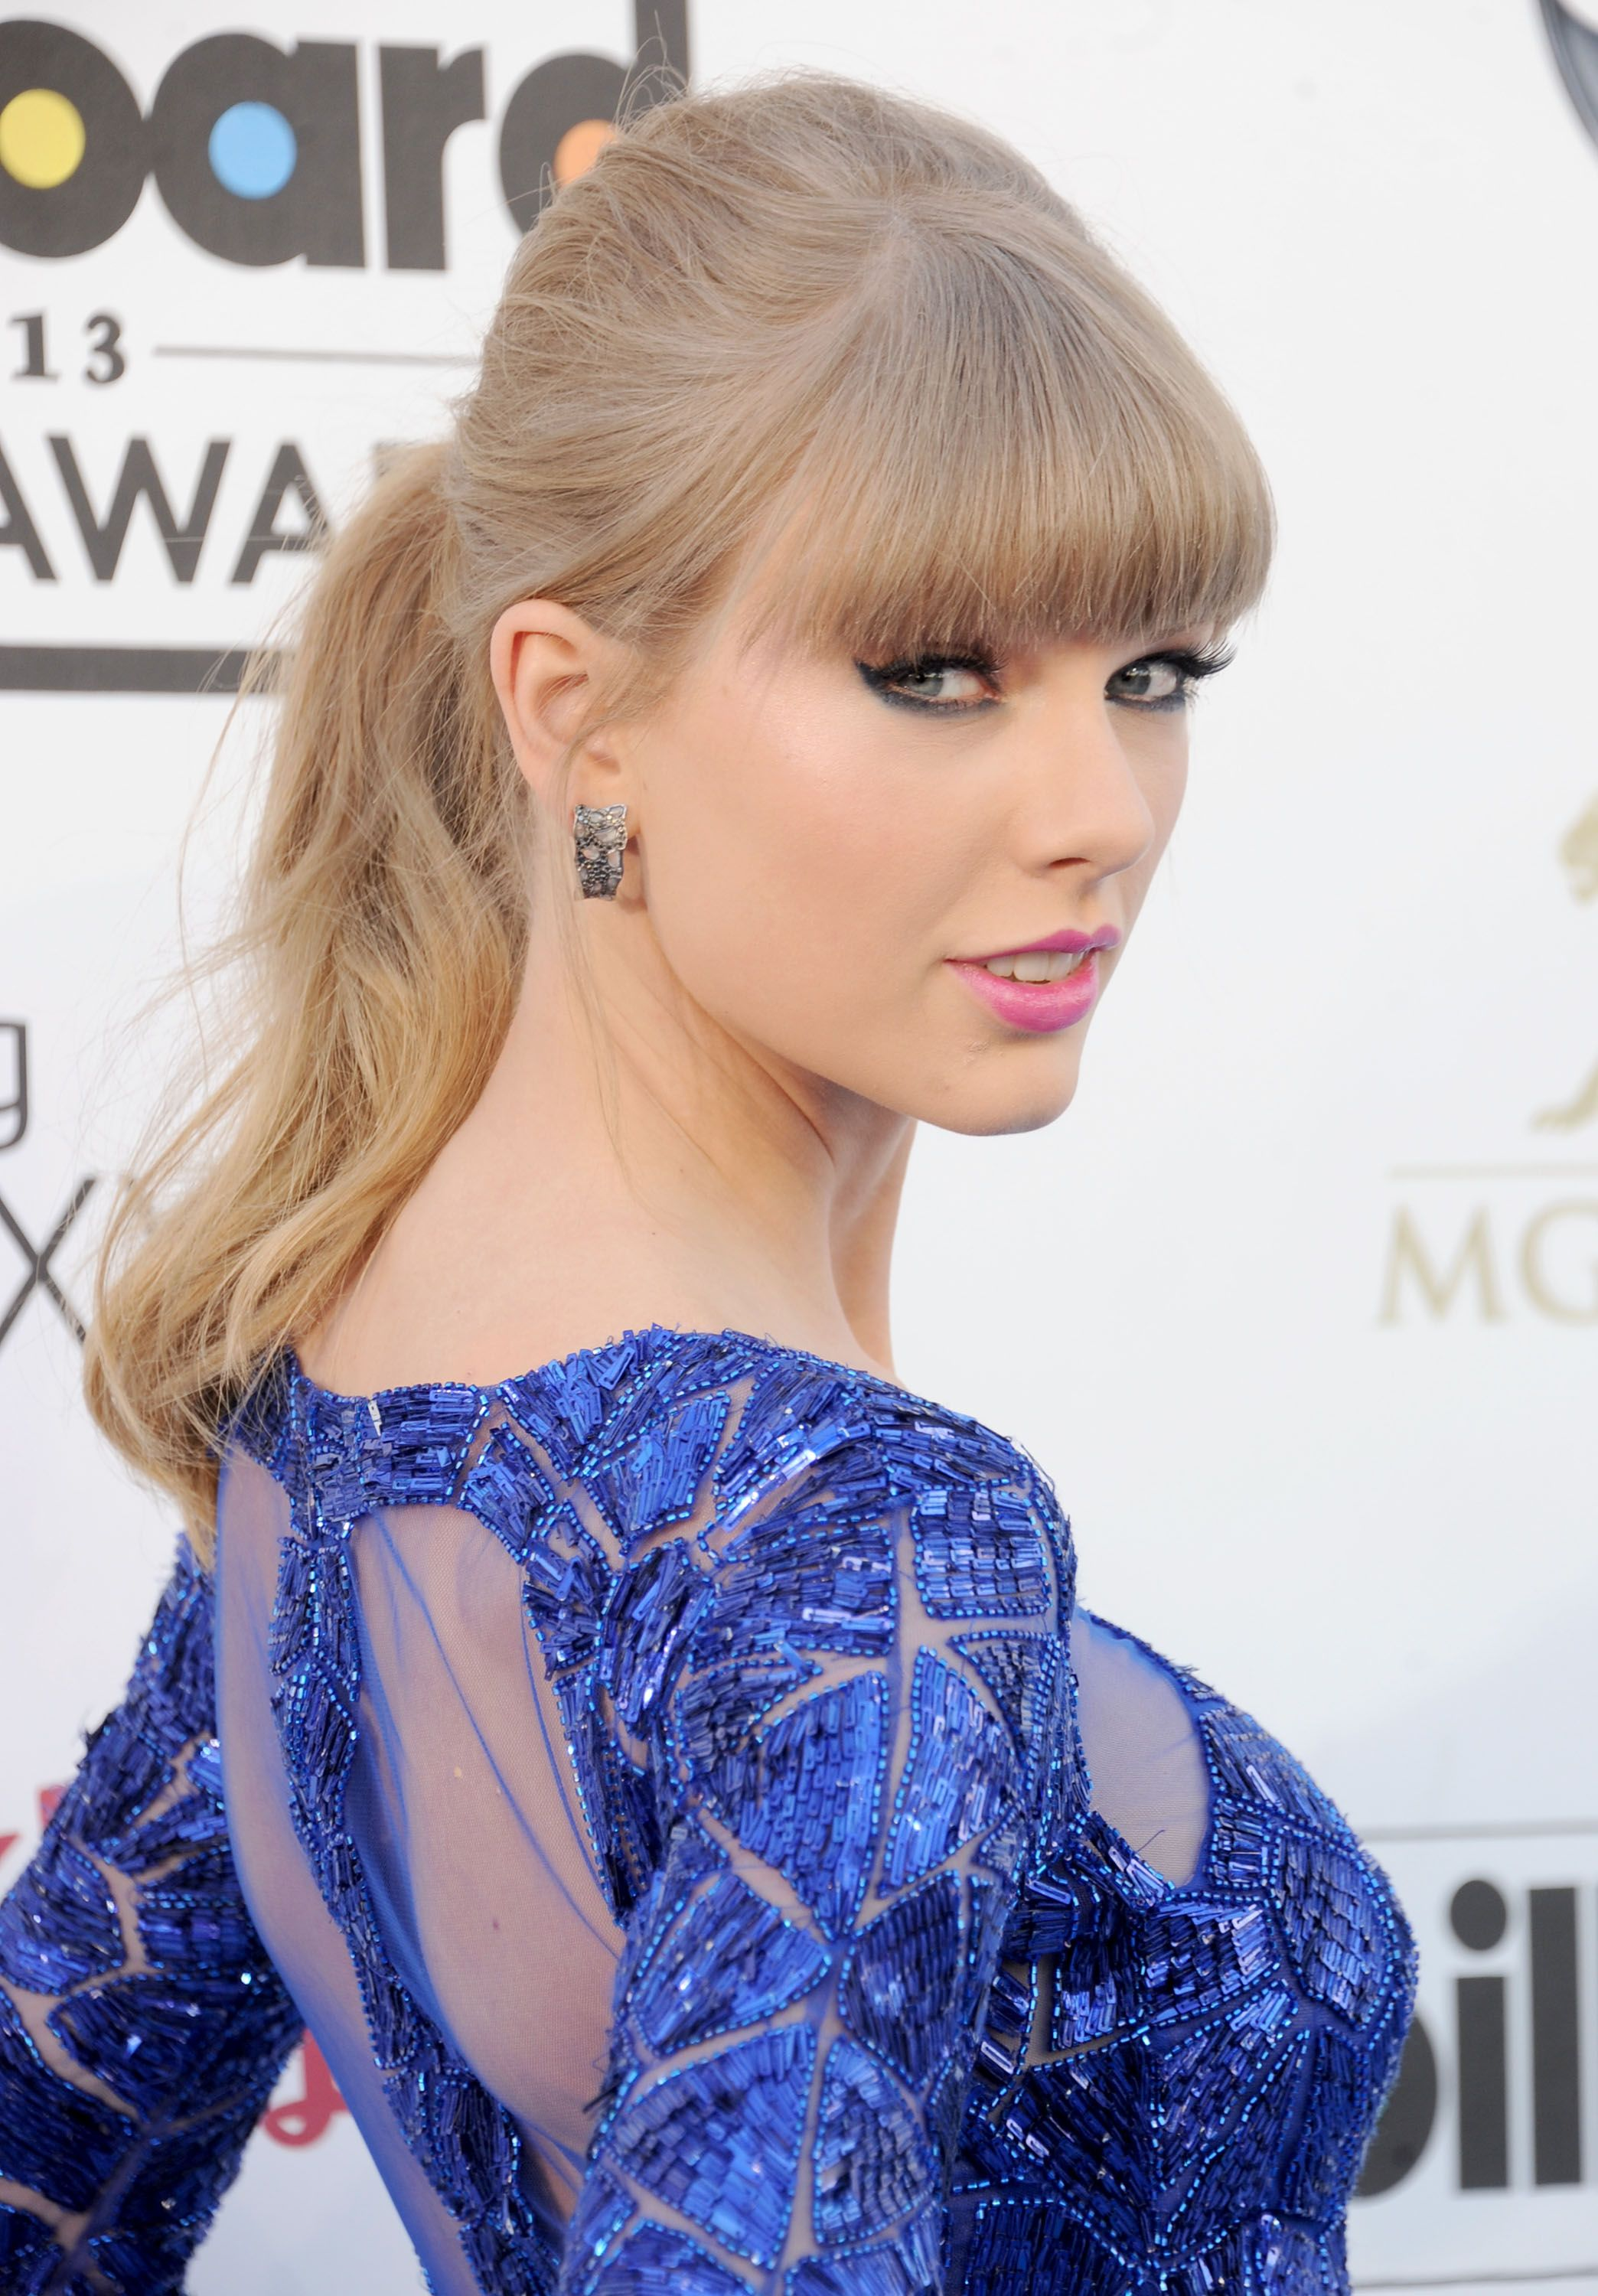 Taylor swift 2013 music awards hd images 3 hd wallpapers taylor taylor swift 2013 music awards hd images 3 hd wallpapers voltagebd Gallery